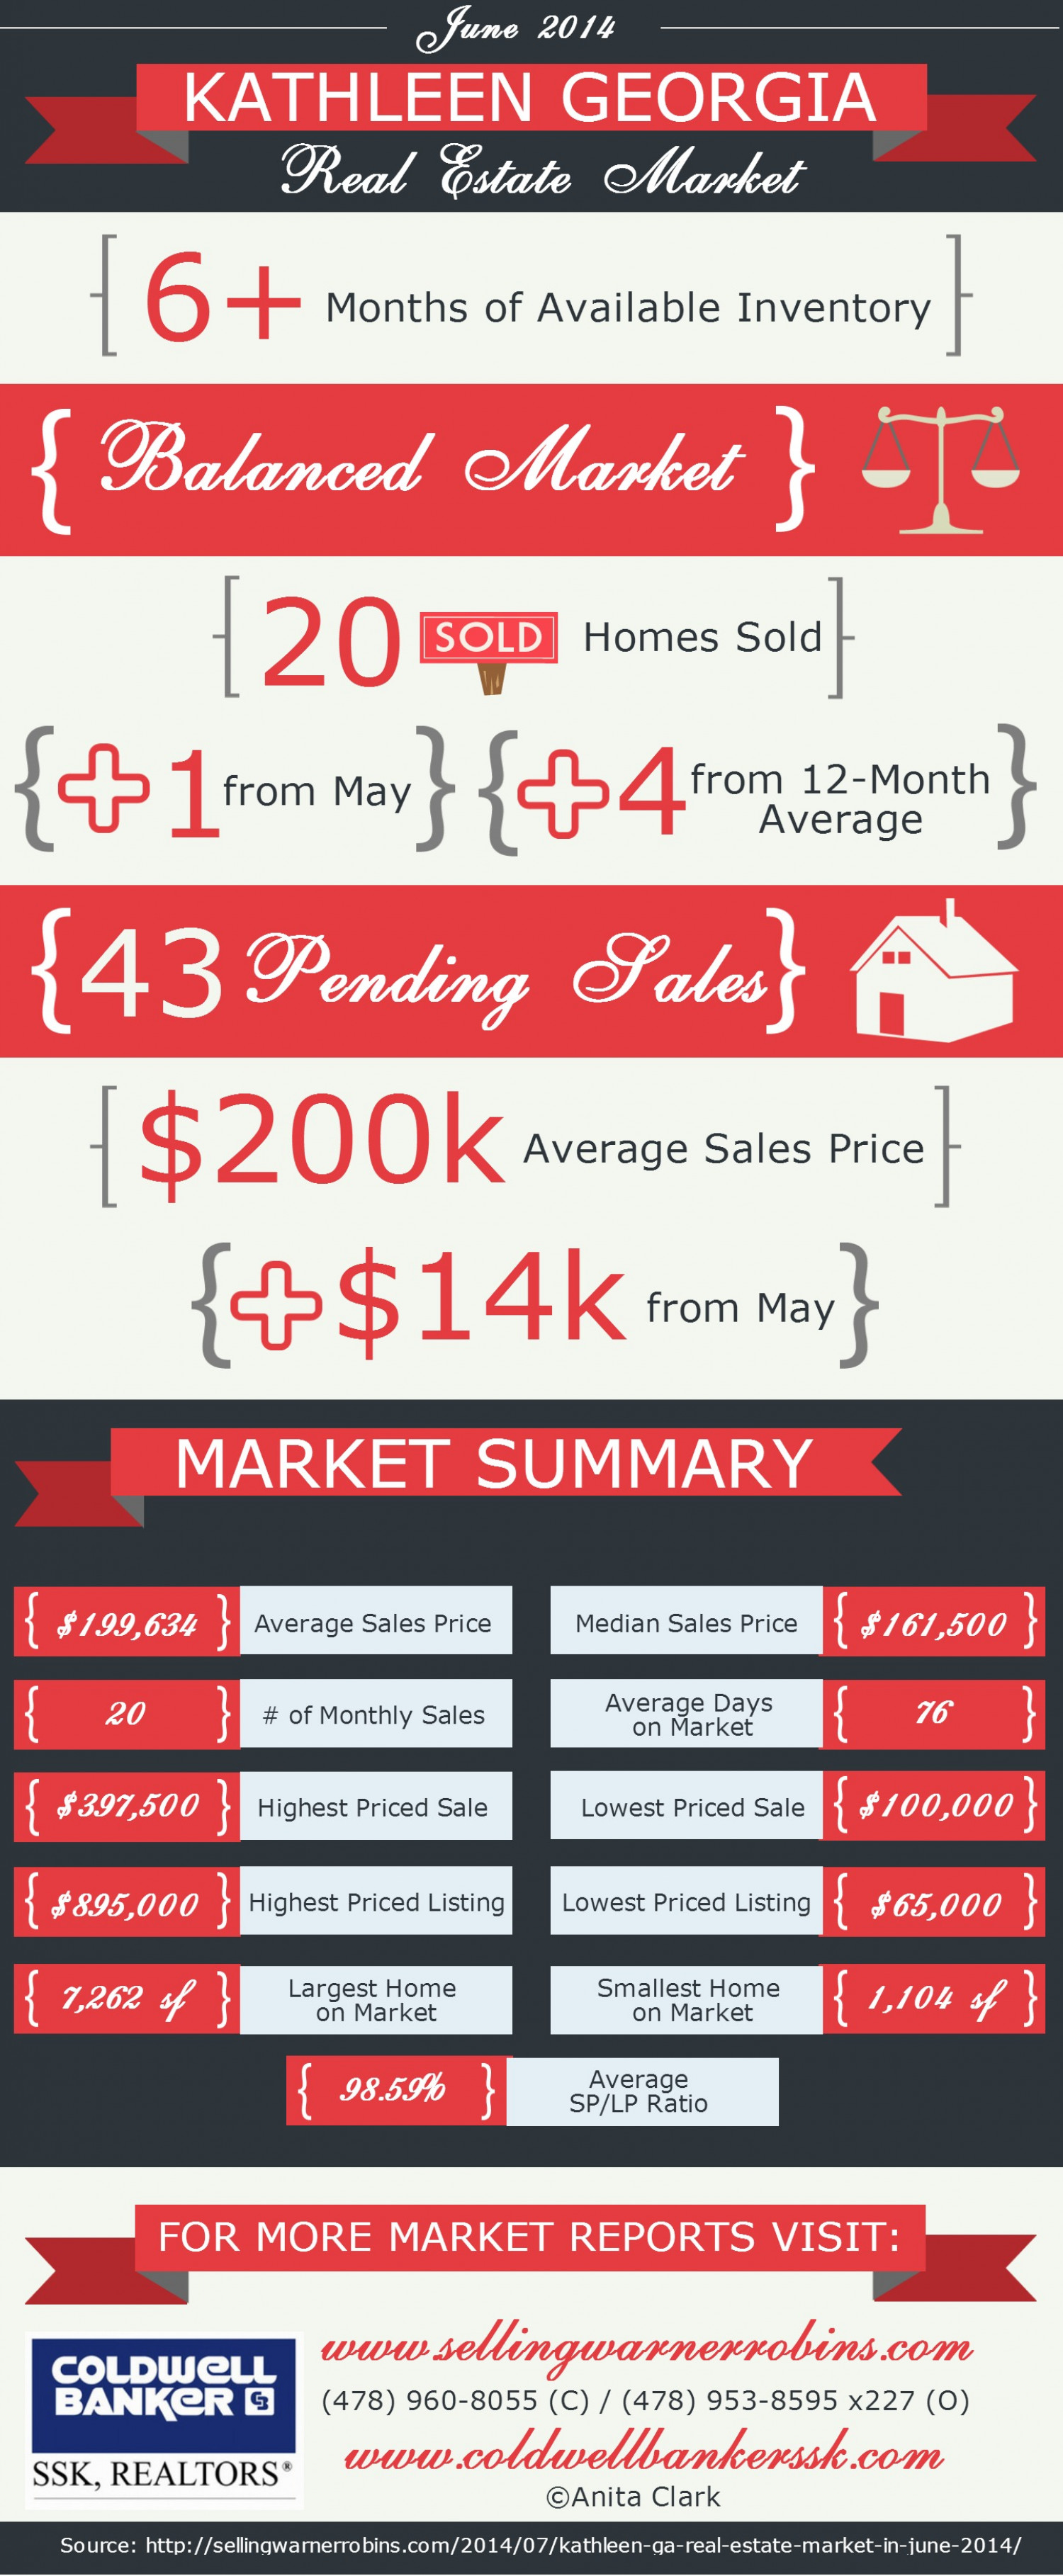 Kathleen GA Real Estate Market in June 2014 Infographic